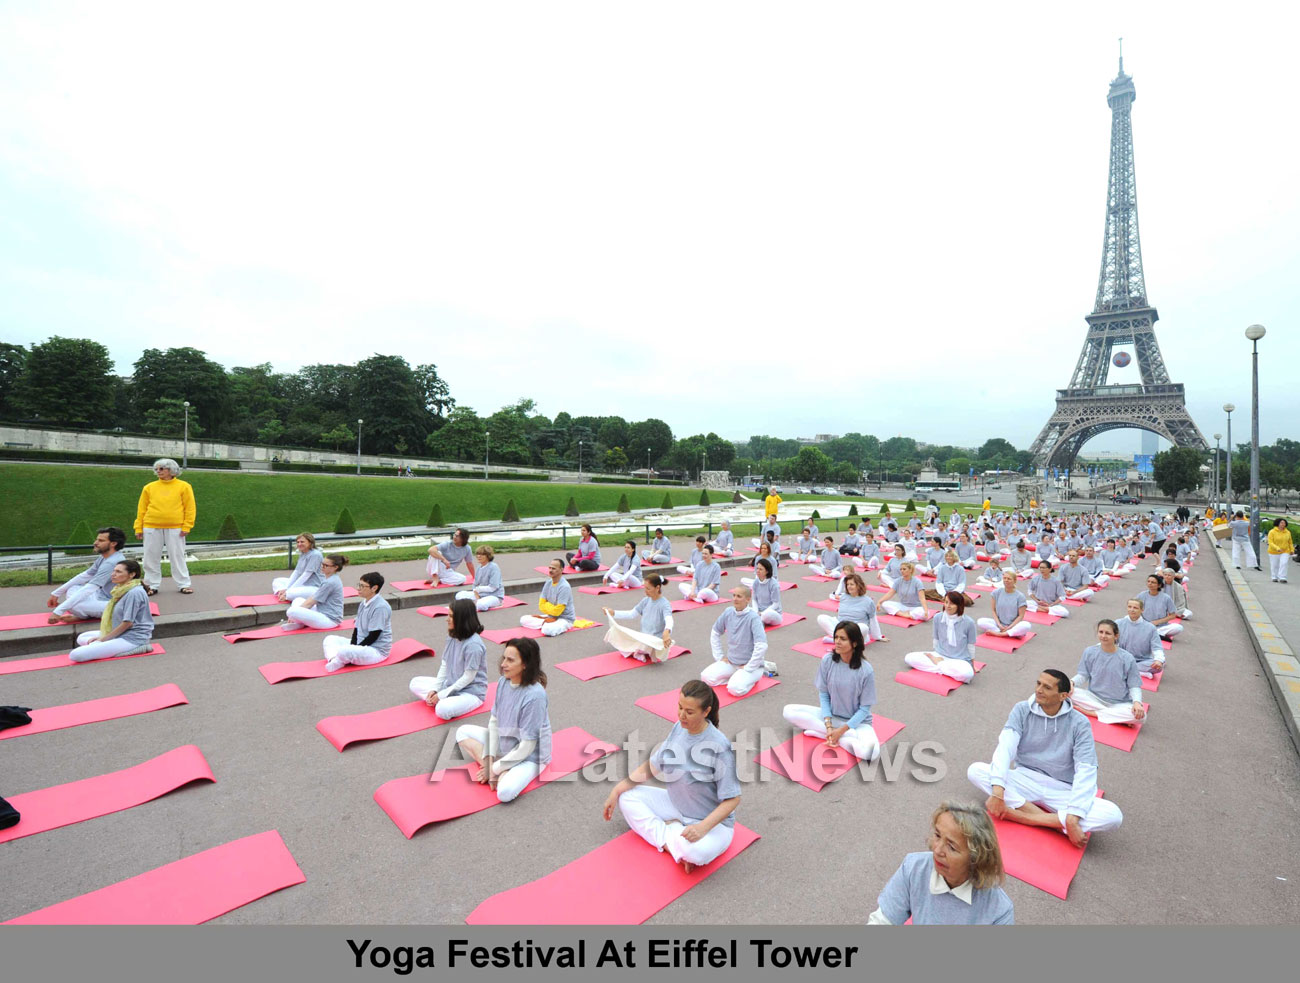 Euro Cup and Yoga Festival at Eiffel Tower Rocked Paris - Picture 1